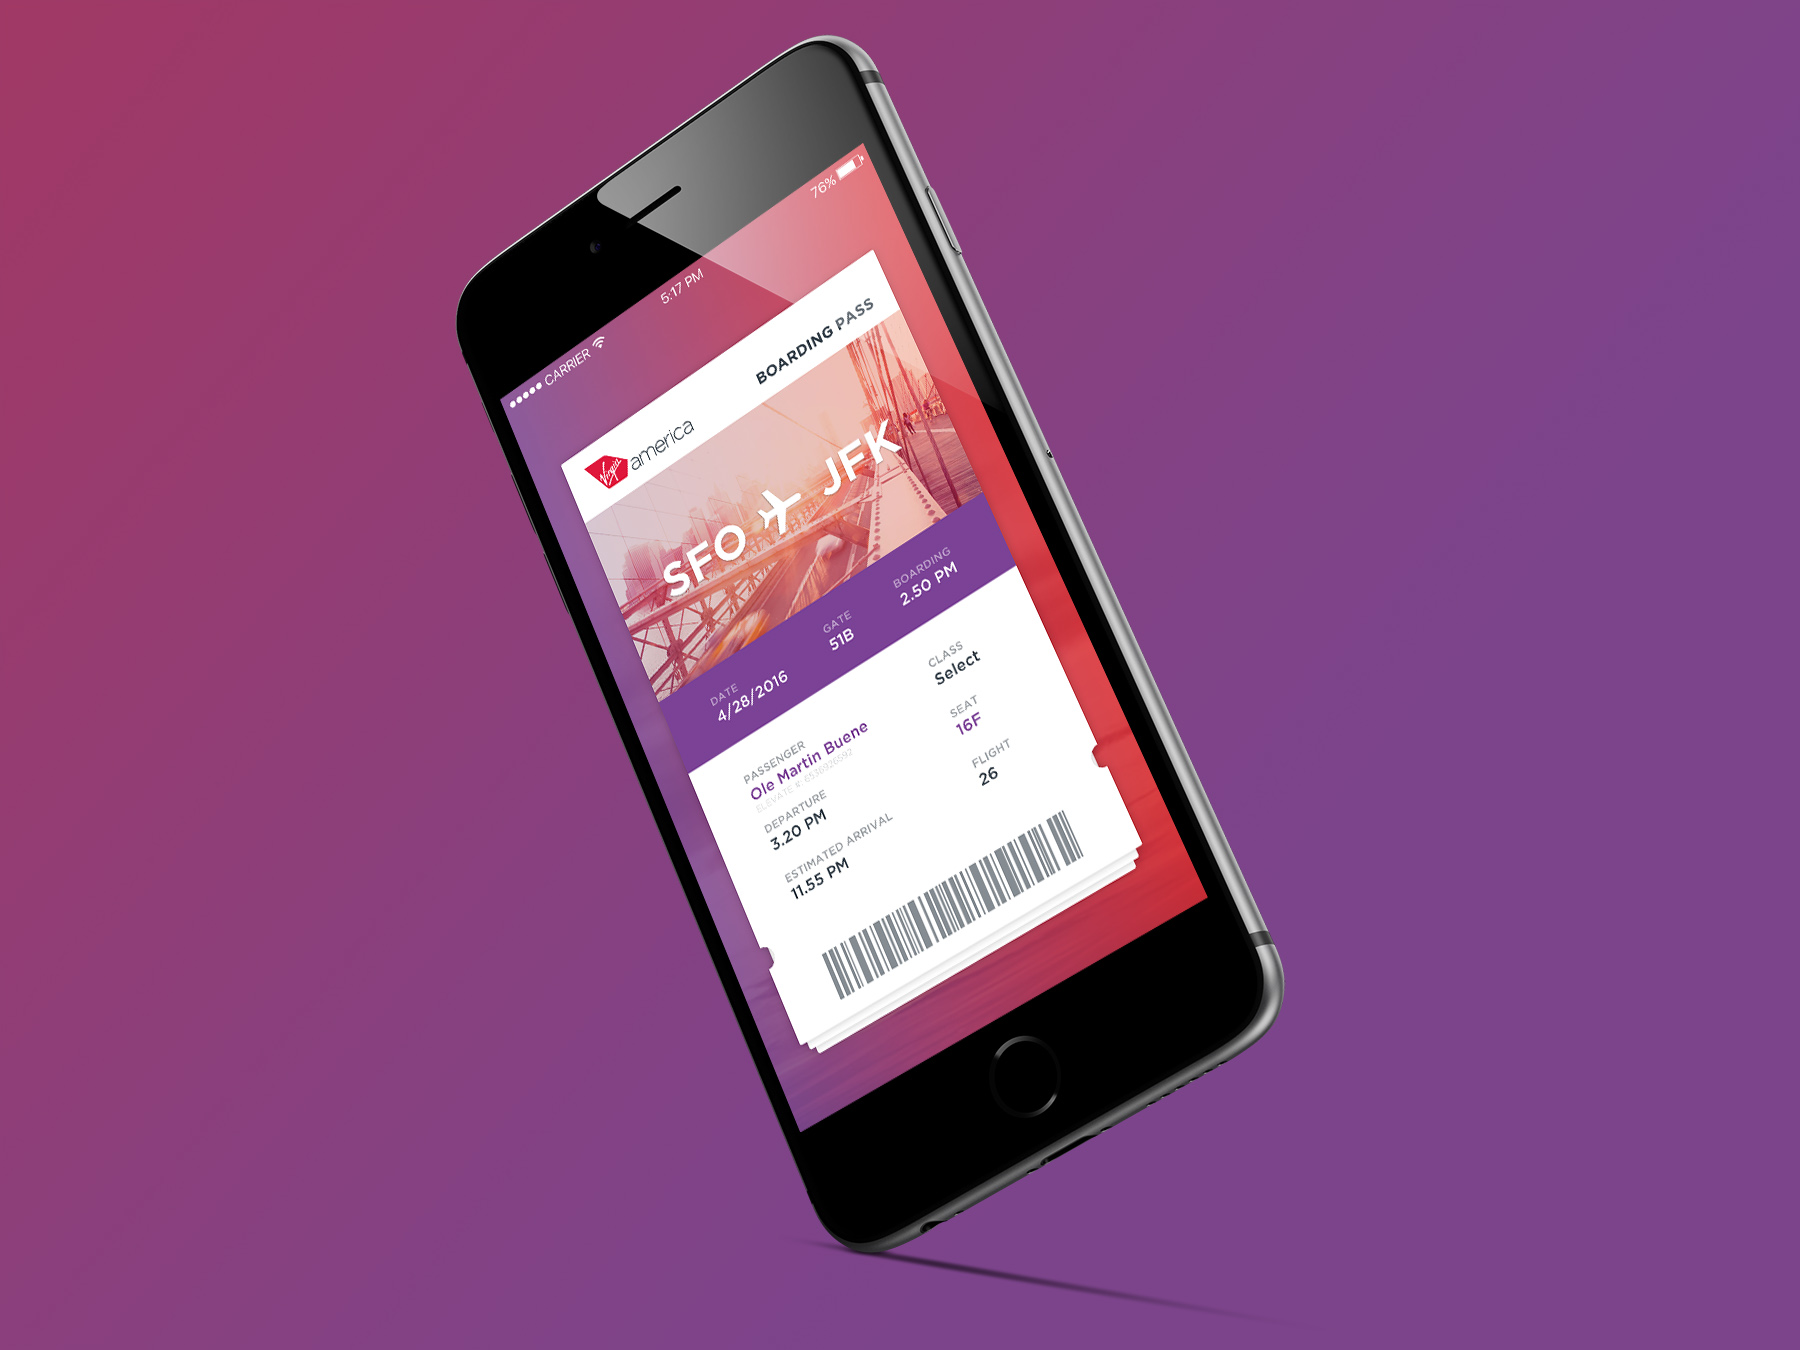 virgin america - mobile boarding pass